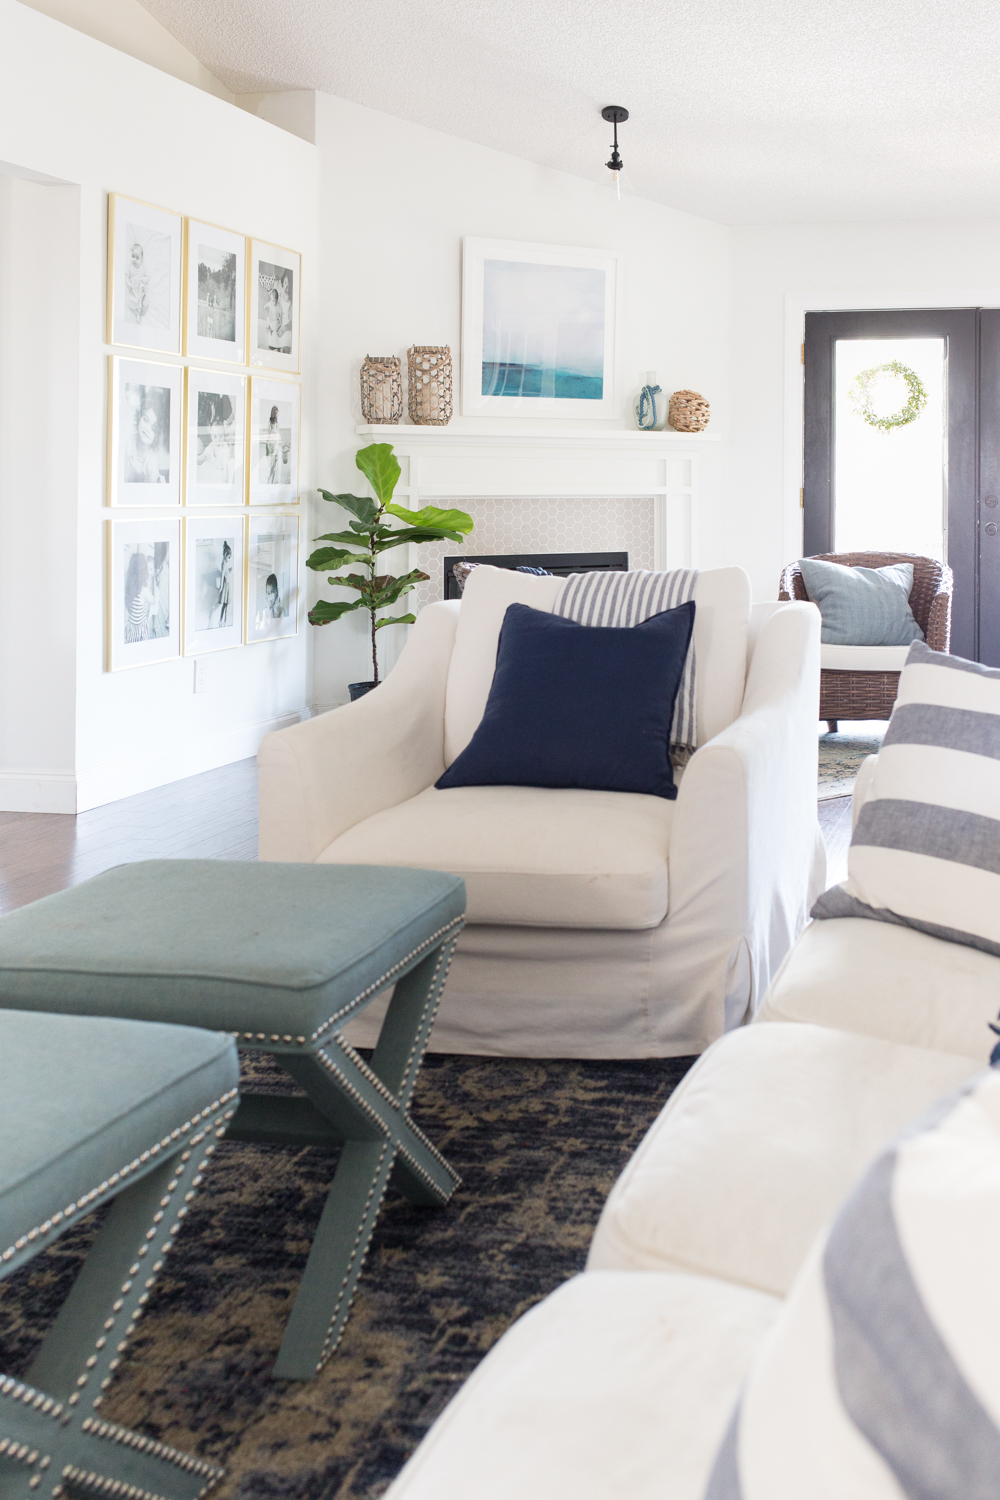 I love this achievable and chic coastal inspired living room